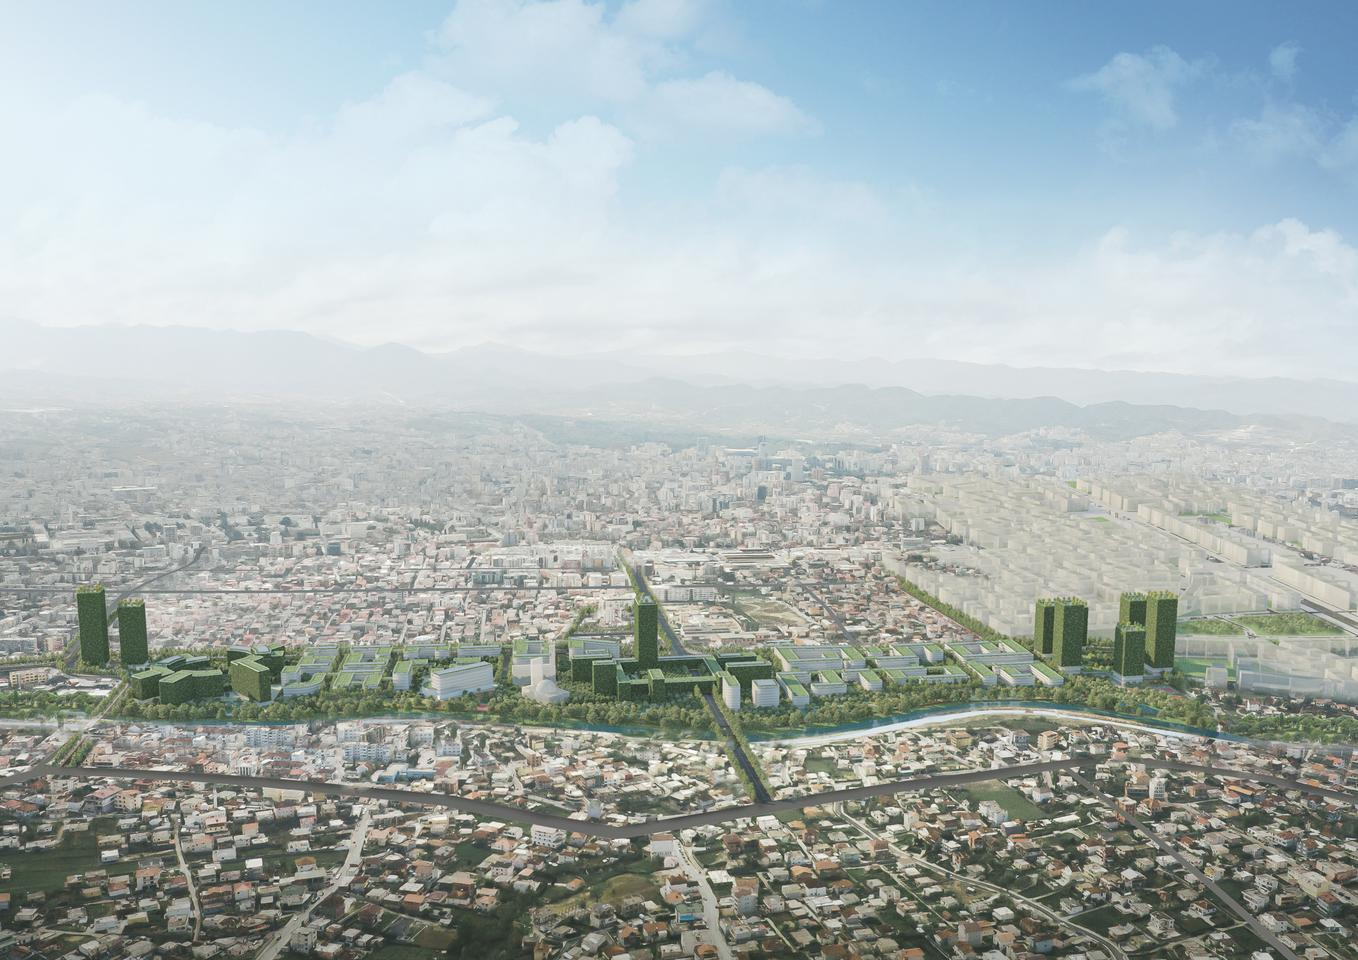 Tirana Riverside is scheduled to begin construction soon, with the first housing units expected to be completed in 12 months